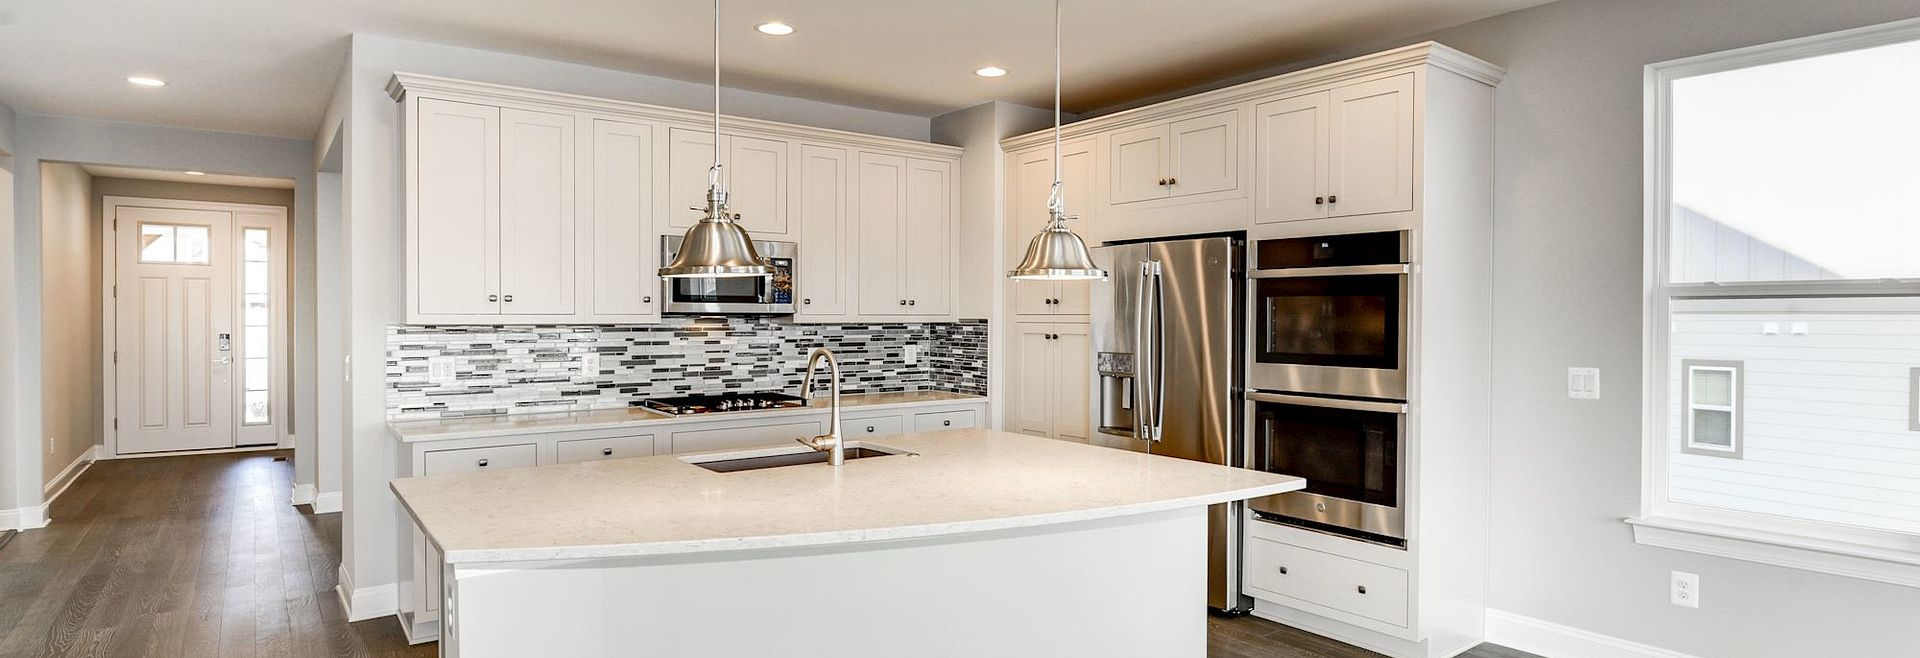 Trilogy at Lake Frederick Quick Move In Aspen Plan Kitche